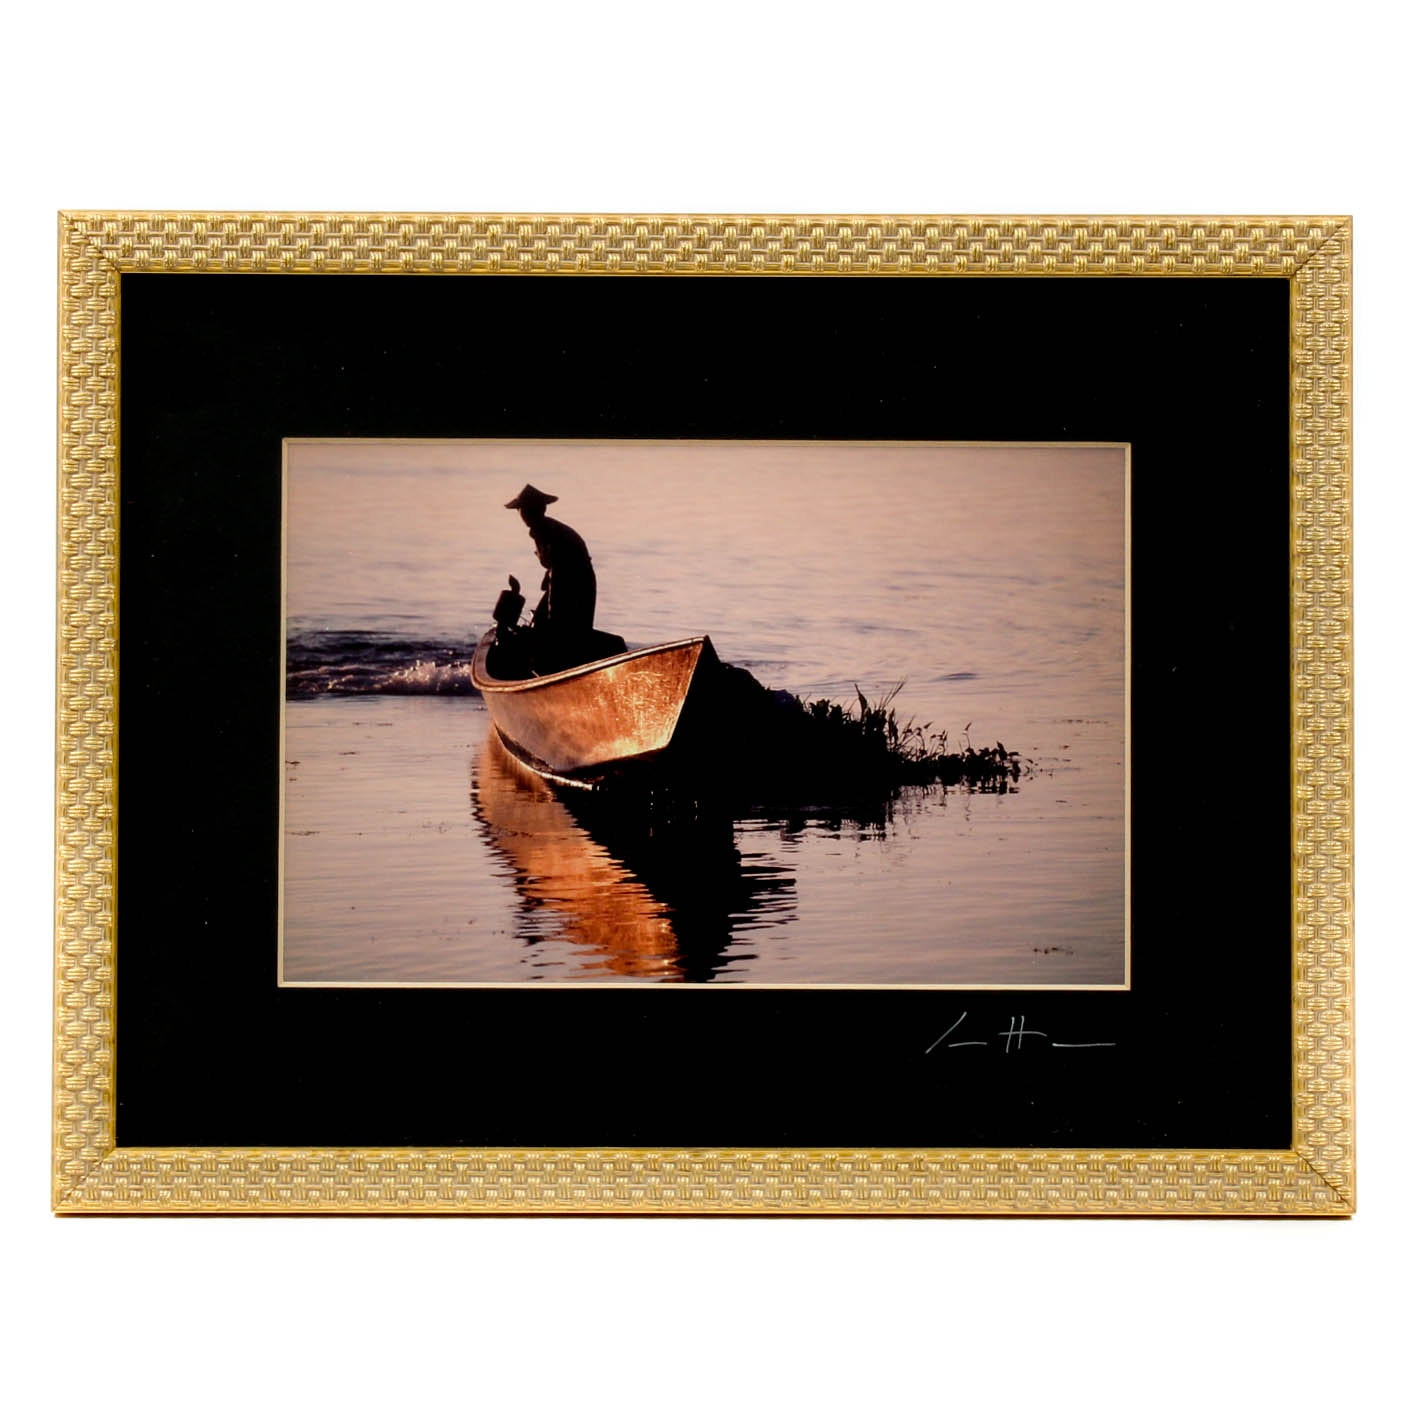 Framed Photograph of Thailand